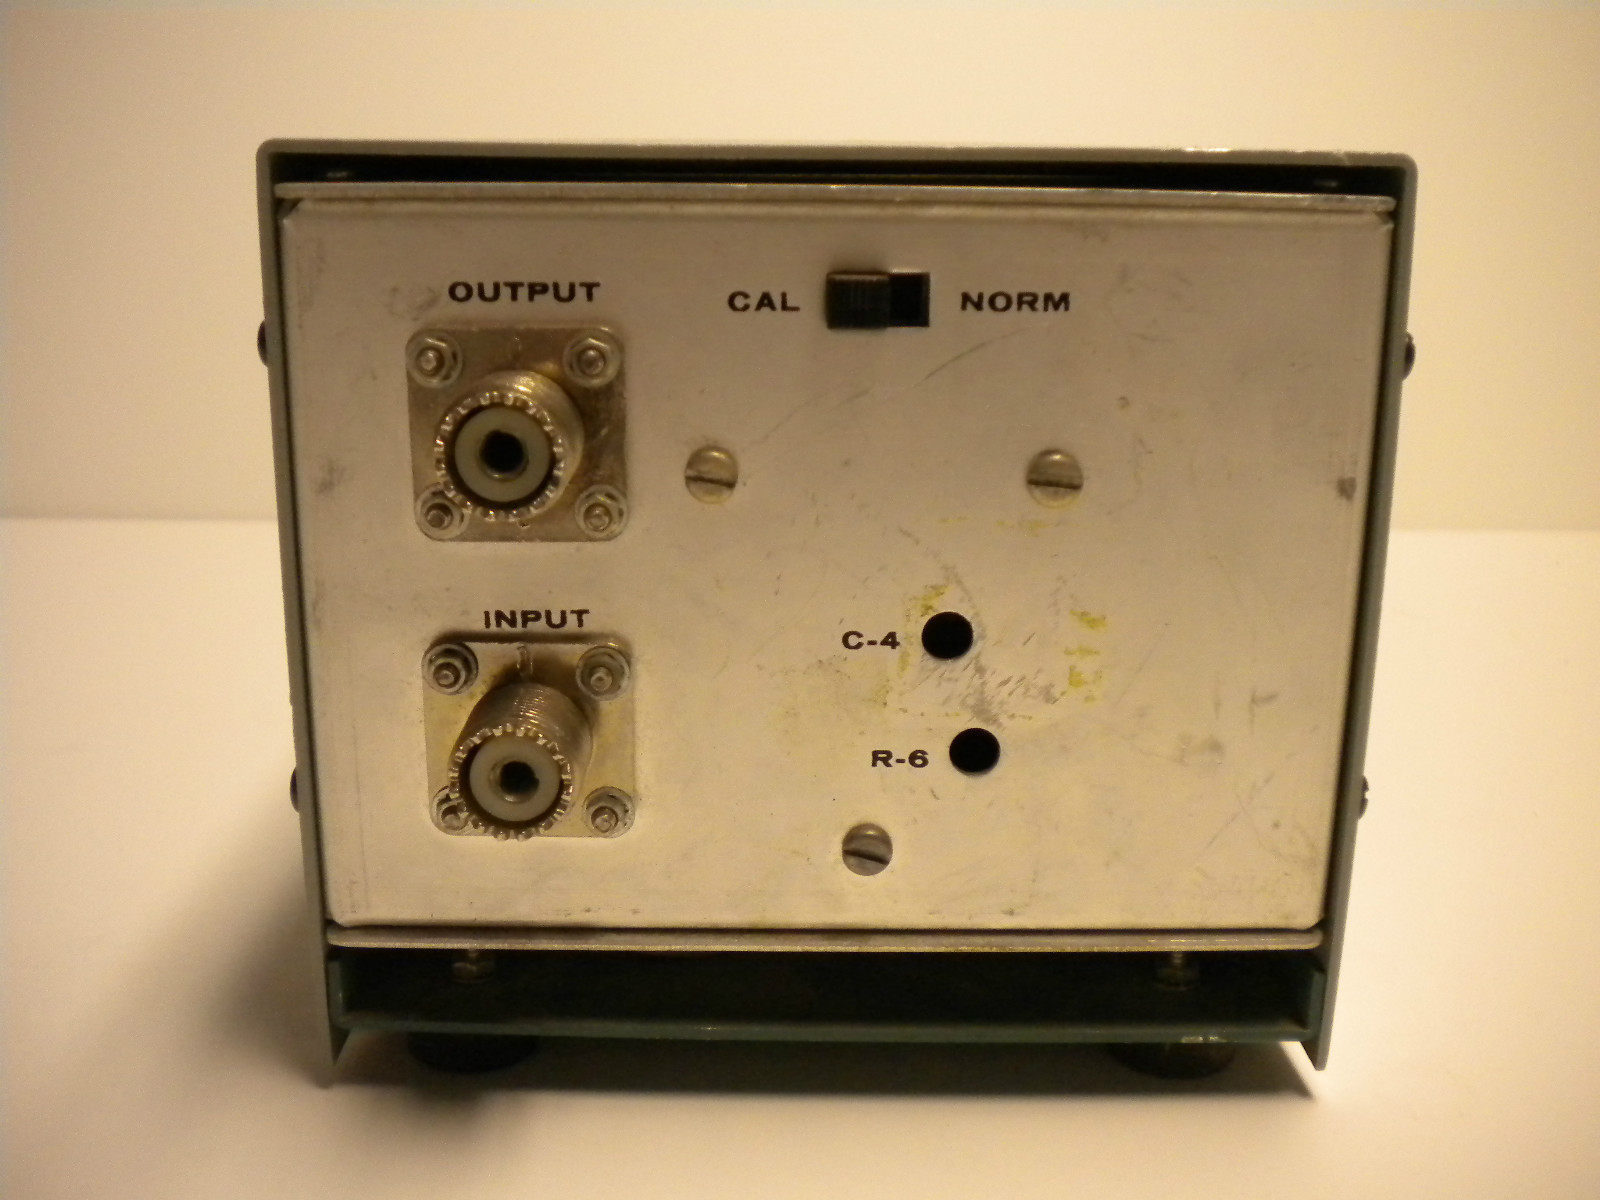 Heathkit Hm 102 Swr Meter further History Of Reciever Design Regeneration And Building The Tectec 1253 moreover Londons Tube Map likewise Minerva Minx A additionally Royalty Free Stock Photos Nyc Channel Gardens Rockefeller Center Stories Tall Ge Building Image32108508. on old radio tubes